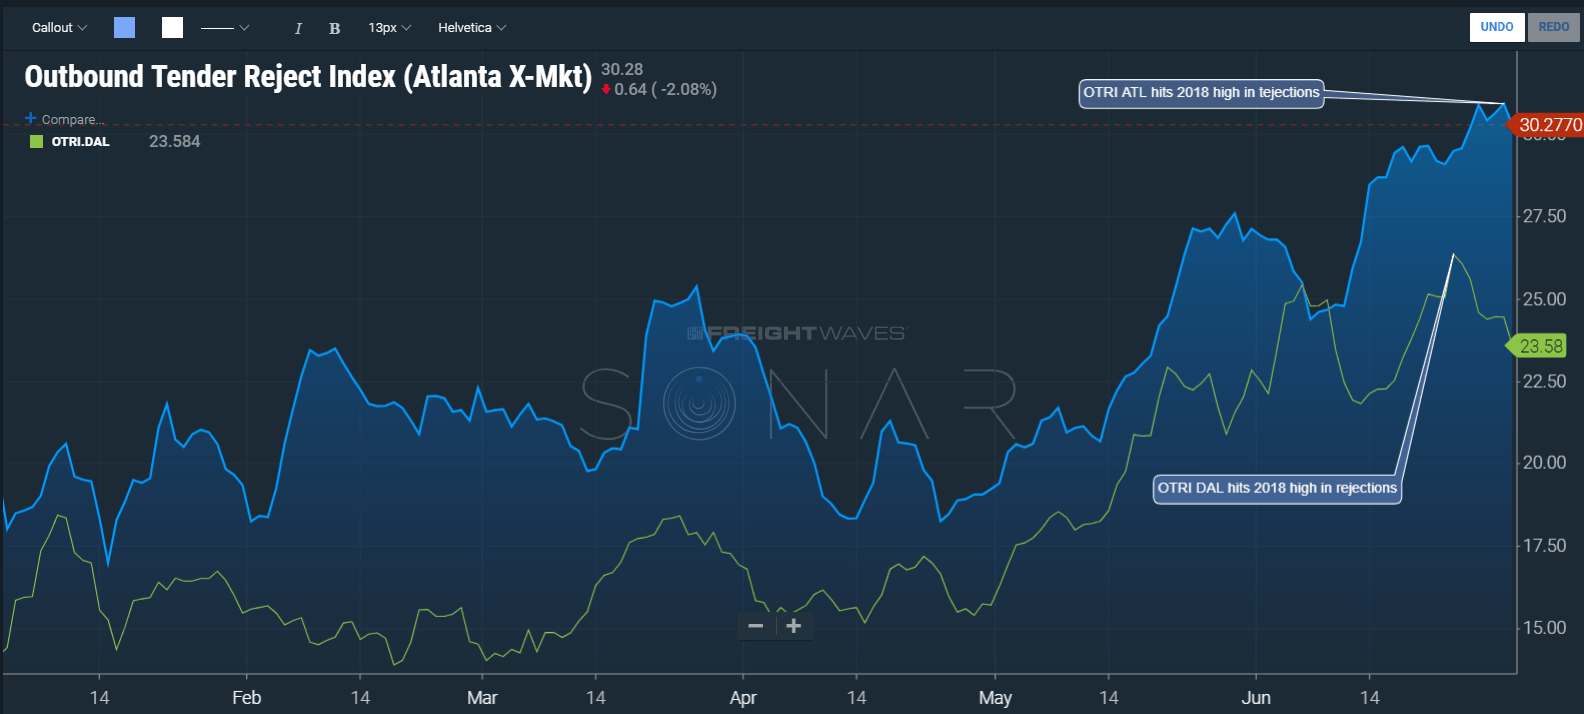 (Image: SONAR chart illustrating the Dallas and Atlanta OTRI over the course of 2108. Both hit highs in June.)